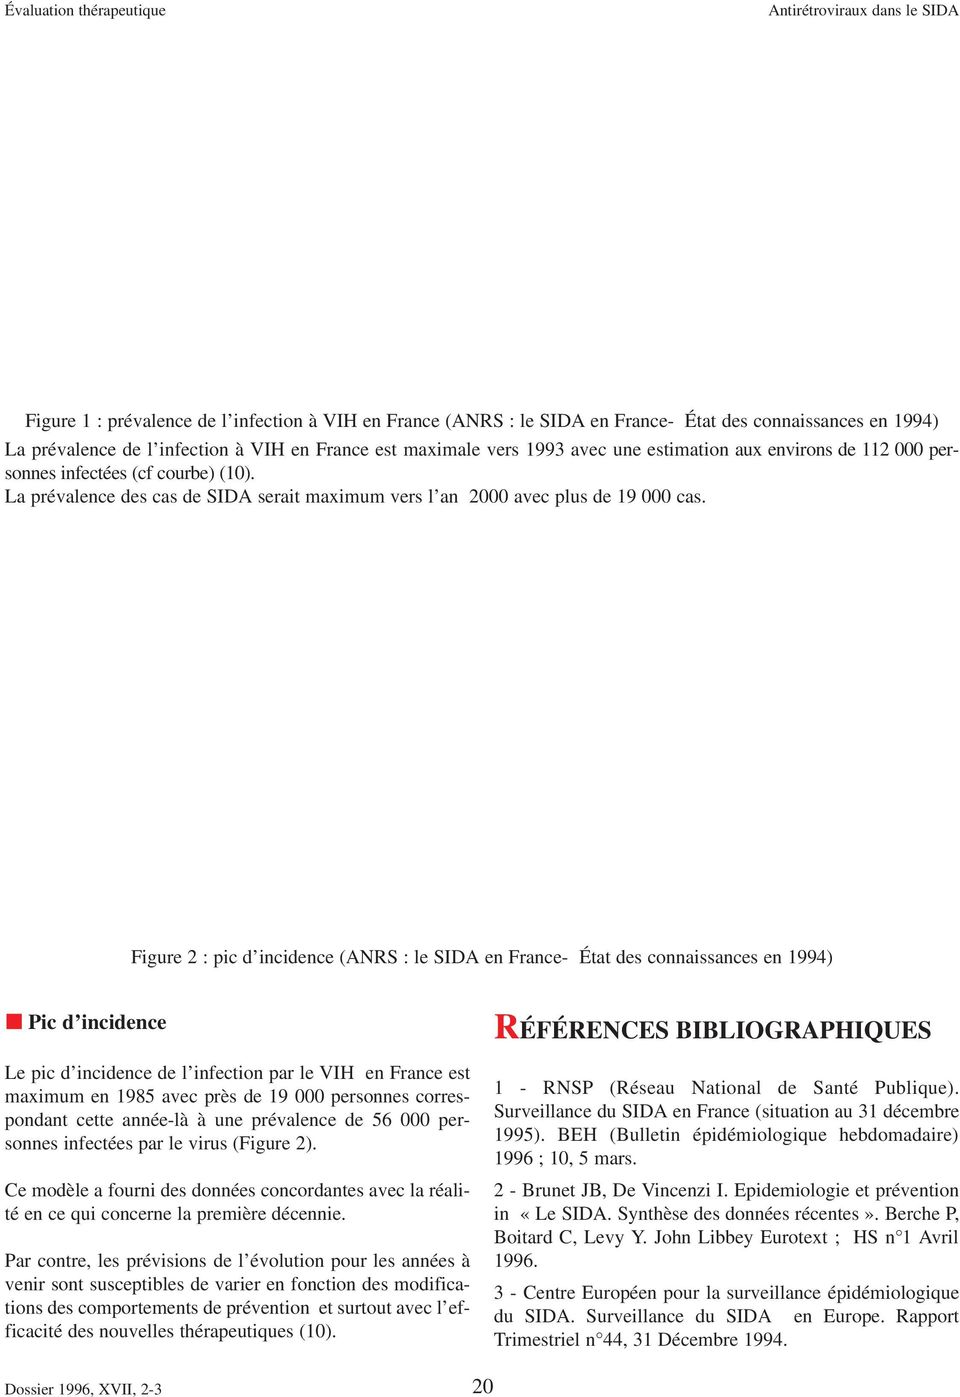 Figure 2 : pic d incidence (ANRS : le SIDA en France- État des connaissances en 1994) Pic d incidence Le pic d incidence de l infection par le VIH en France est maximum en 1985 avec près de 19 000